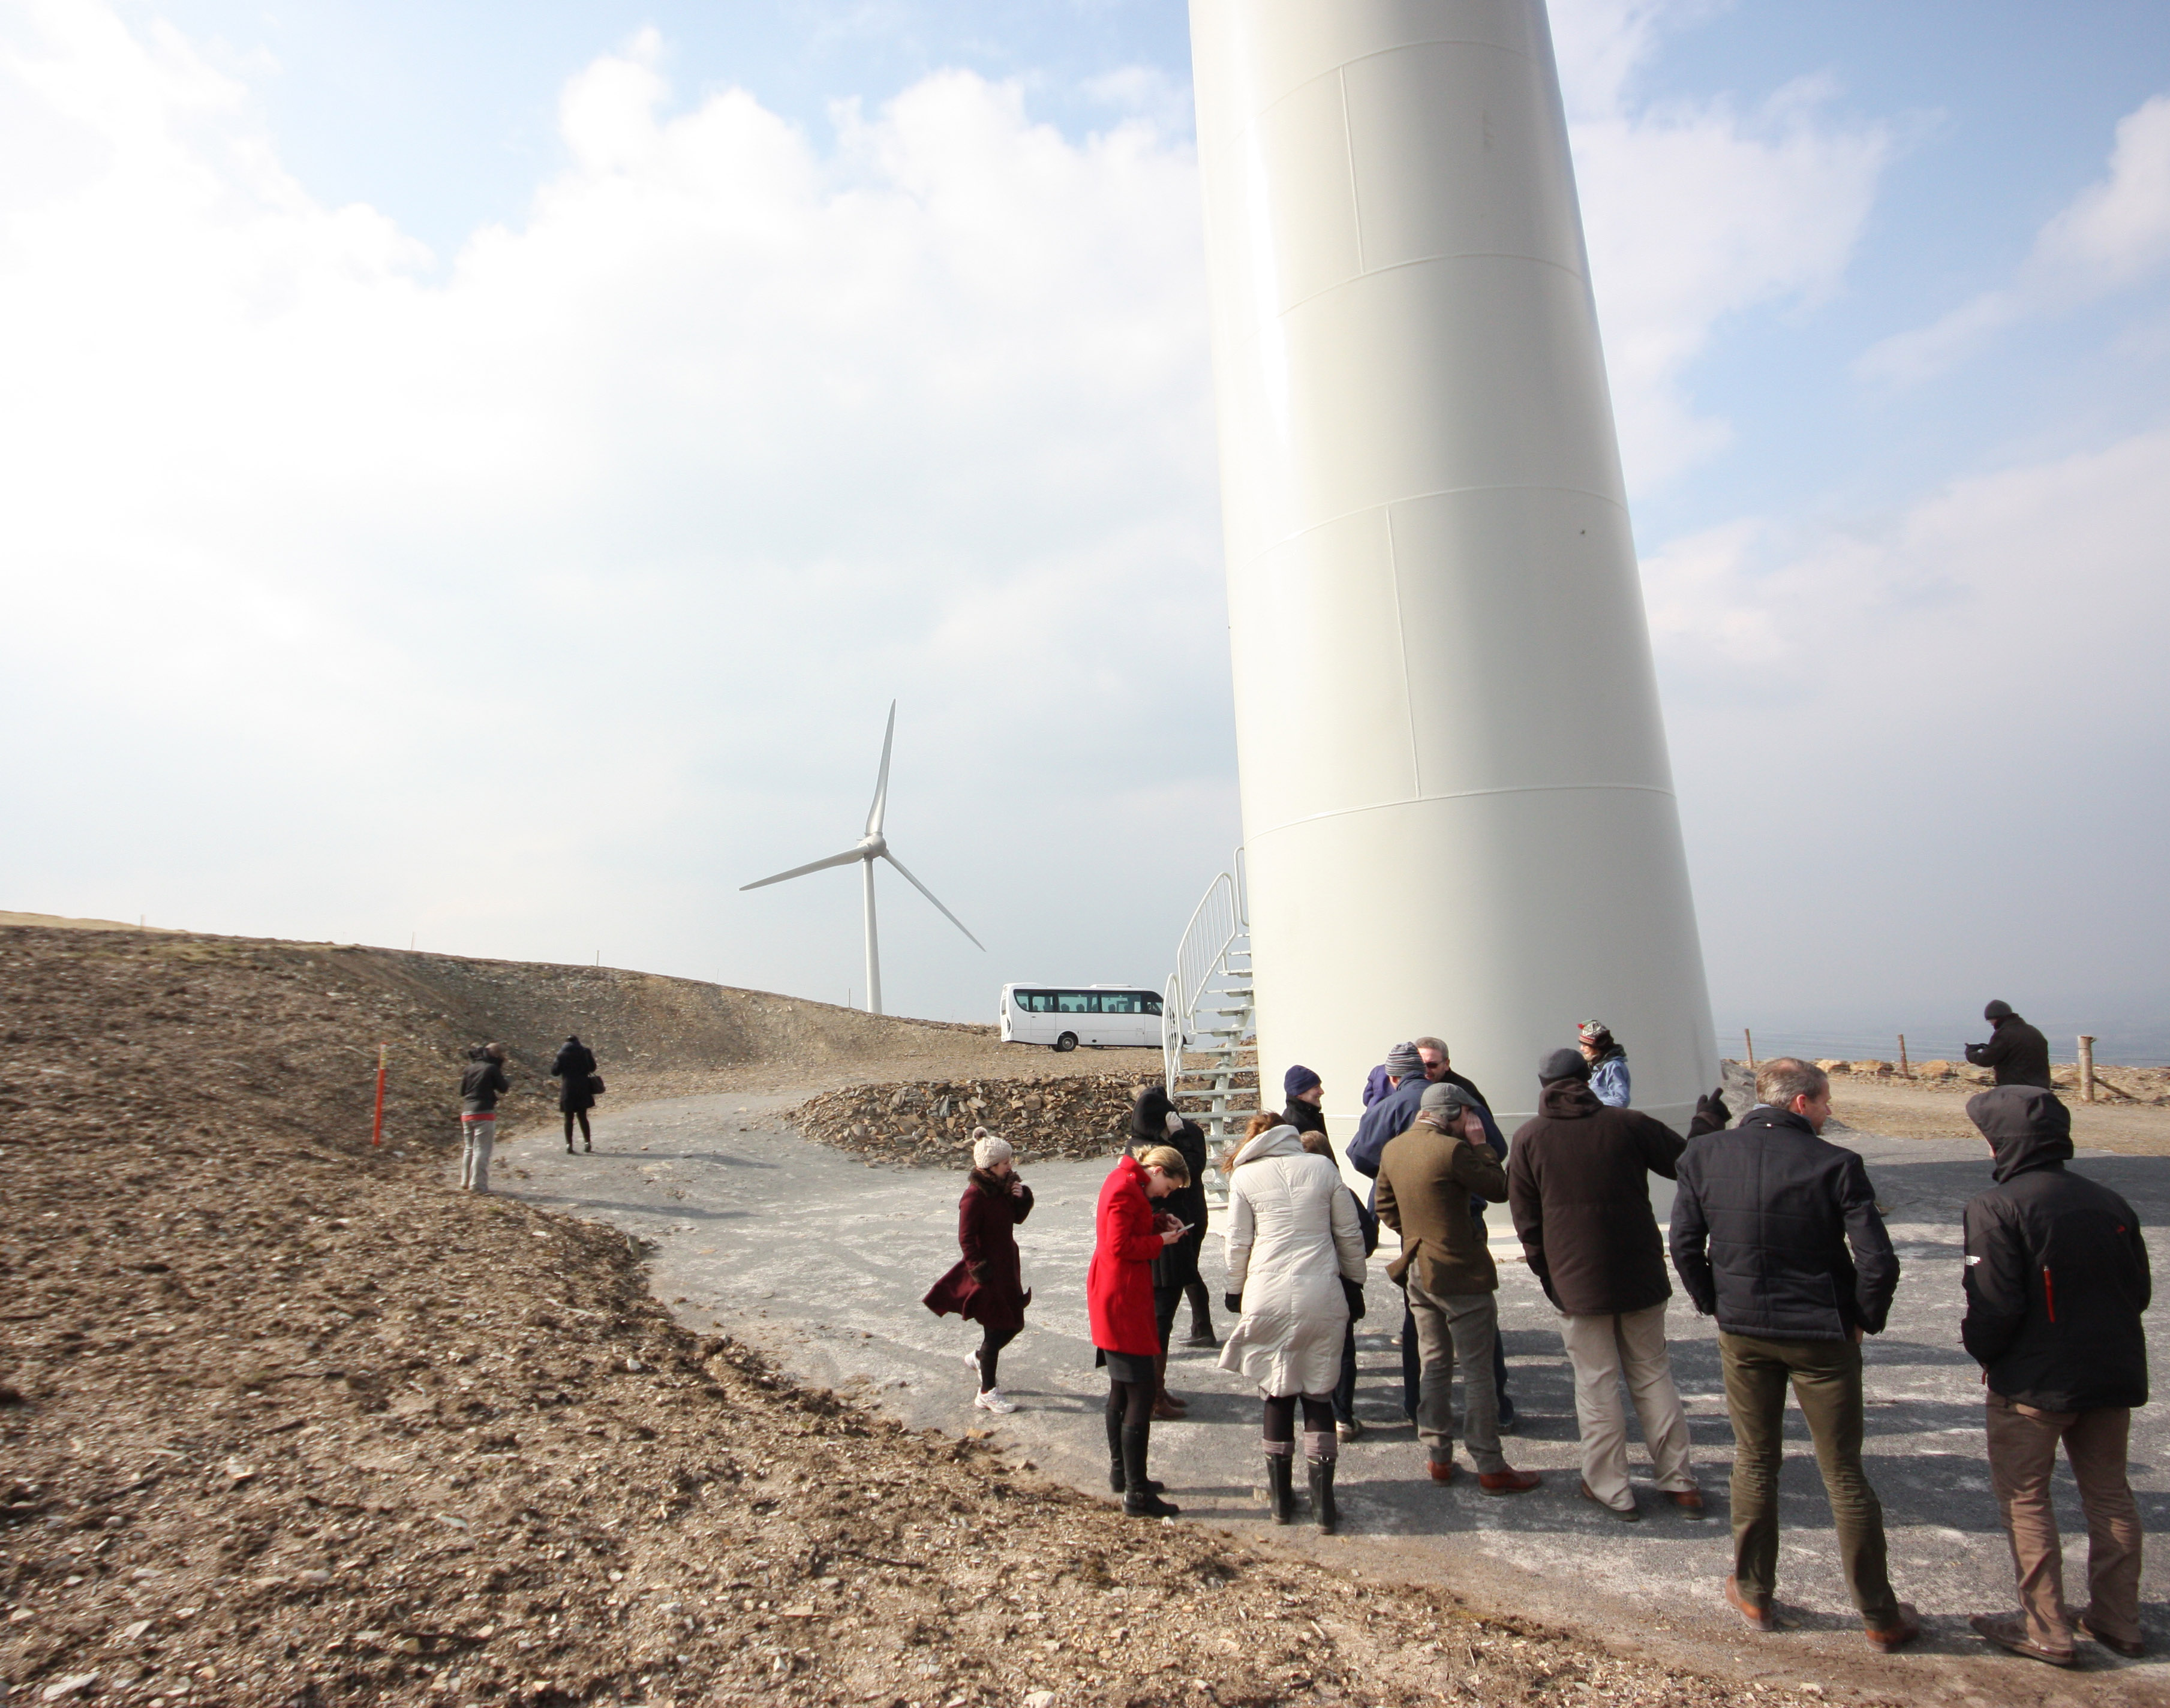 The community-owned Templederry wind farm in North Tipperary is the ownership template which BSB Community Energy Ltd wish to replicate in County Waterford.